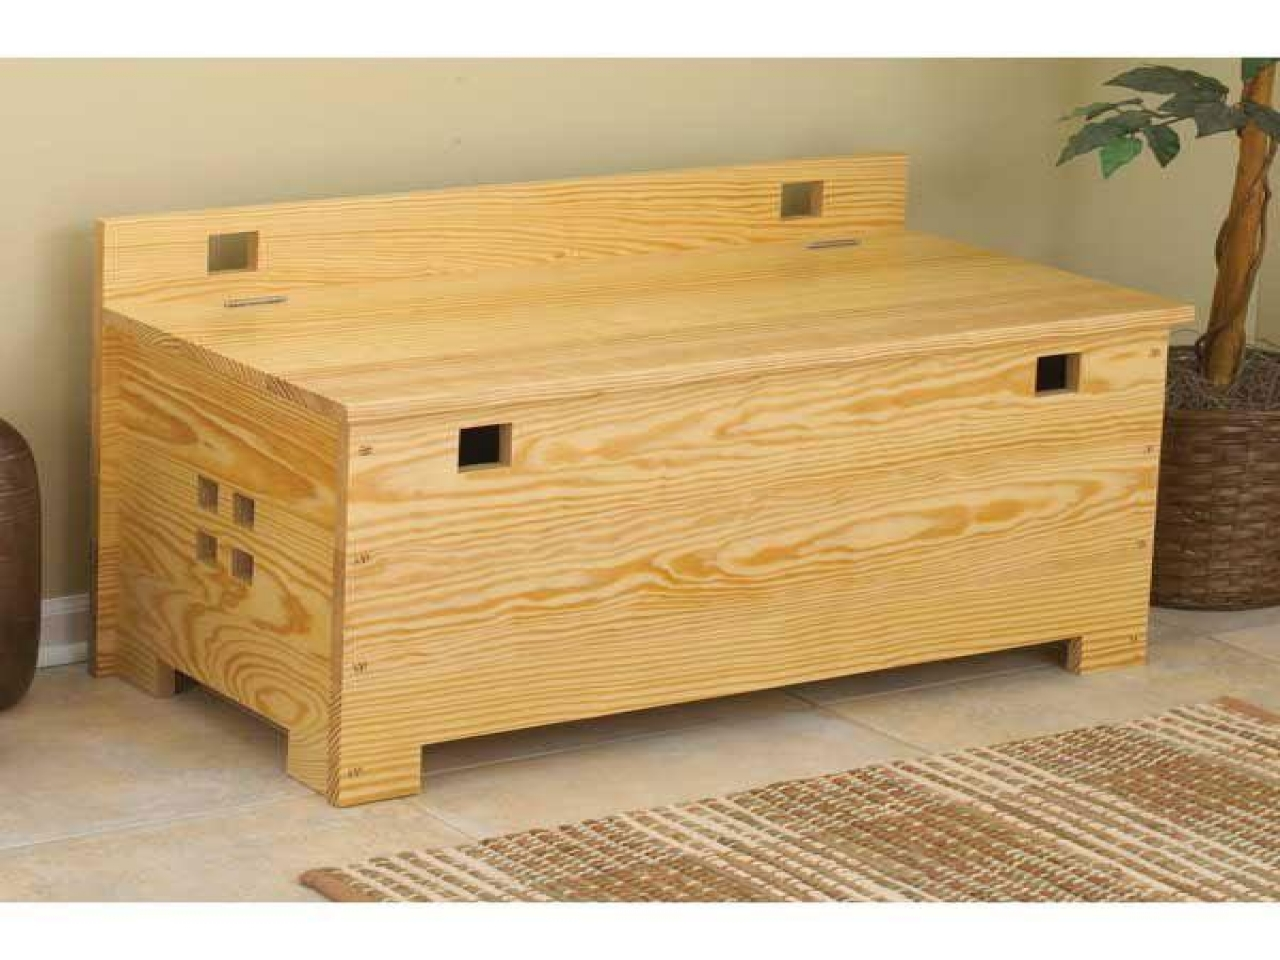 Outdoor Storage Bench Wood Storage Bench Project Plans Wood Home Plans Treesranch Com